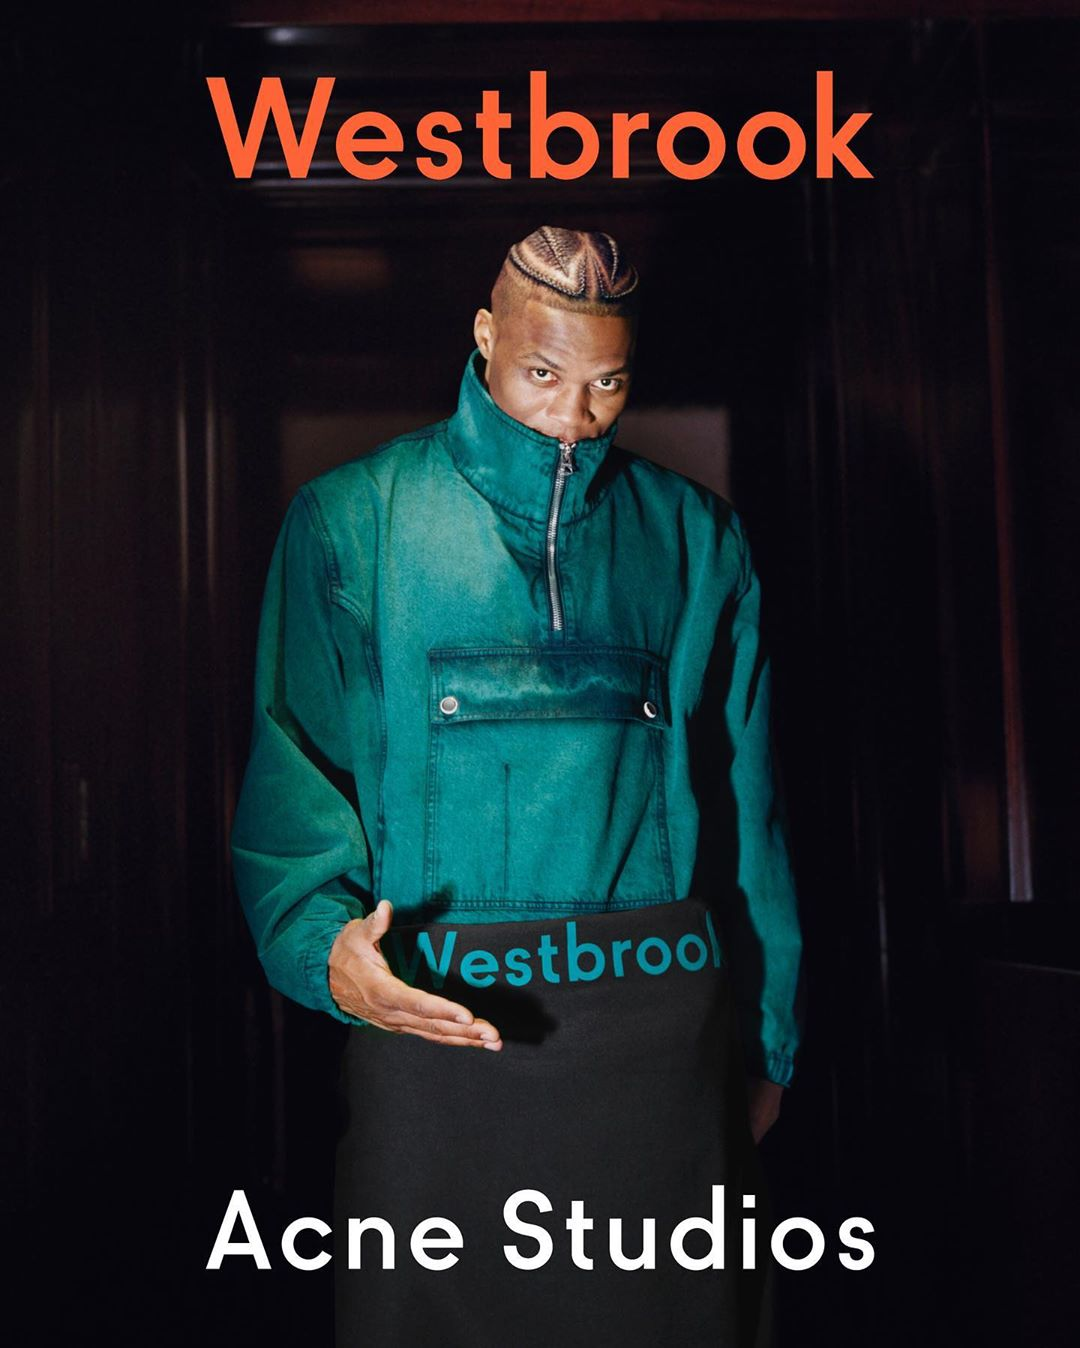 ACNE STUDIOS LAUNCH THE RUSSELL WESTBROOK CAPSULE COLLECTION